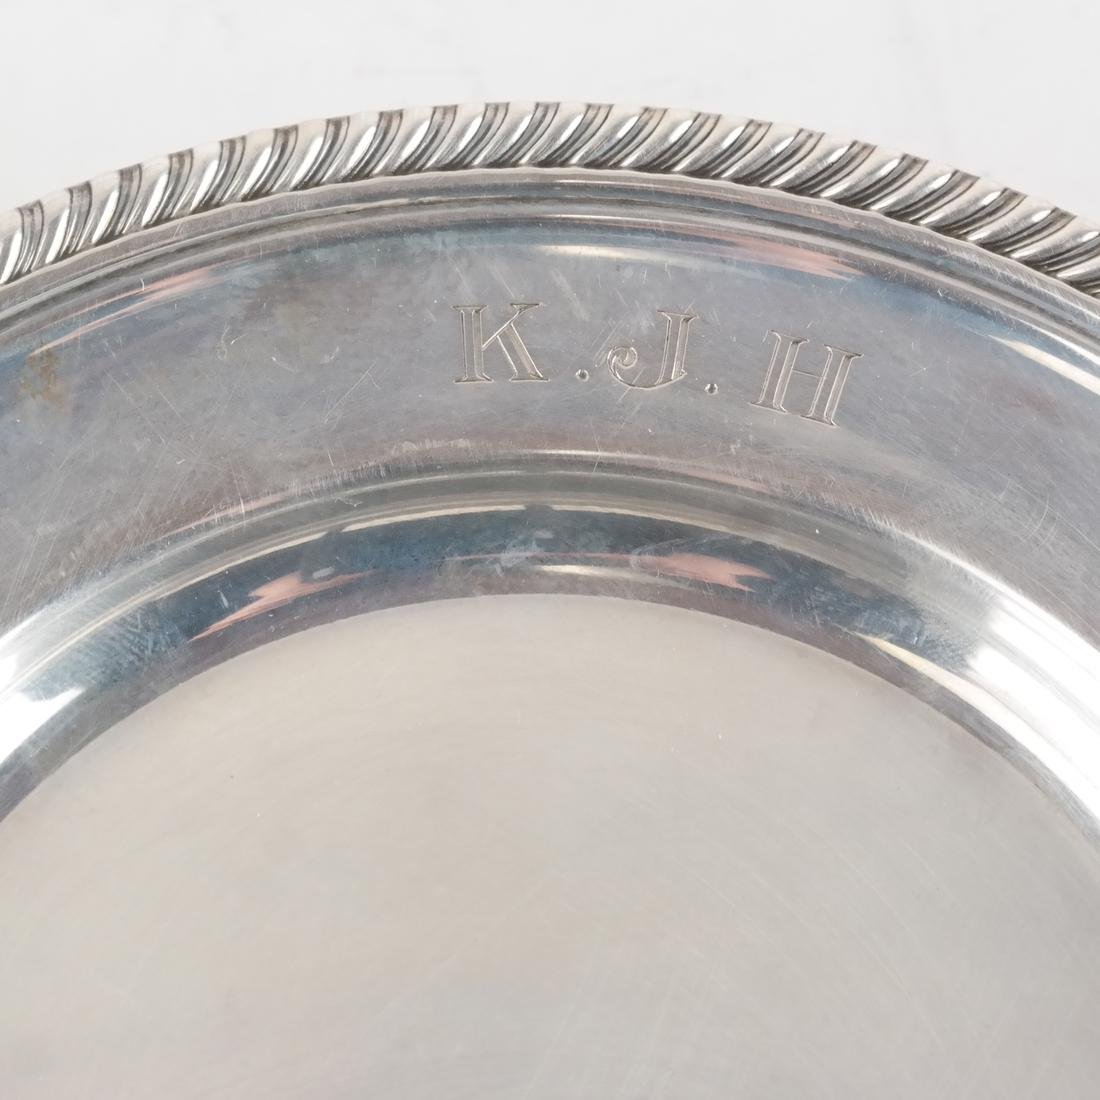 15 Wallace & Gorham Sterling Plates - 2